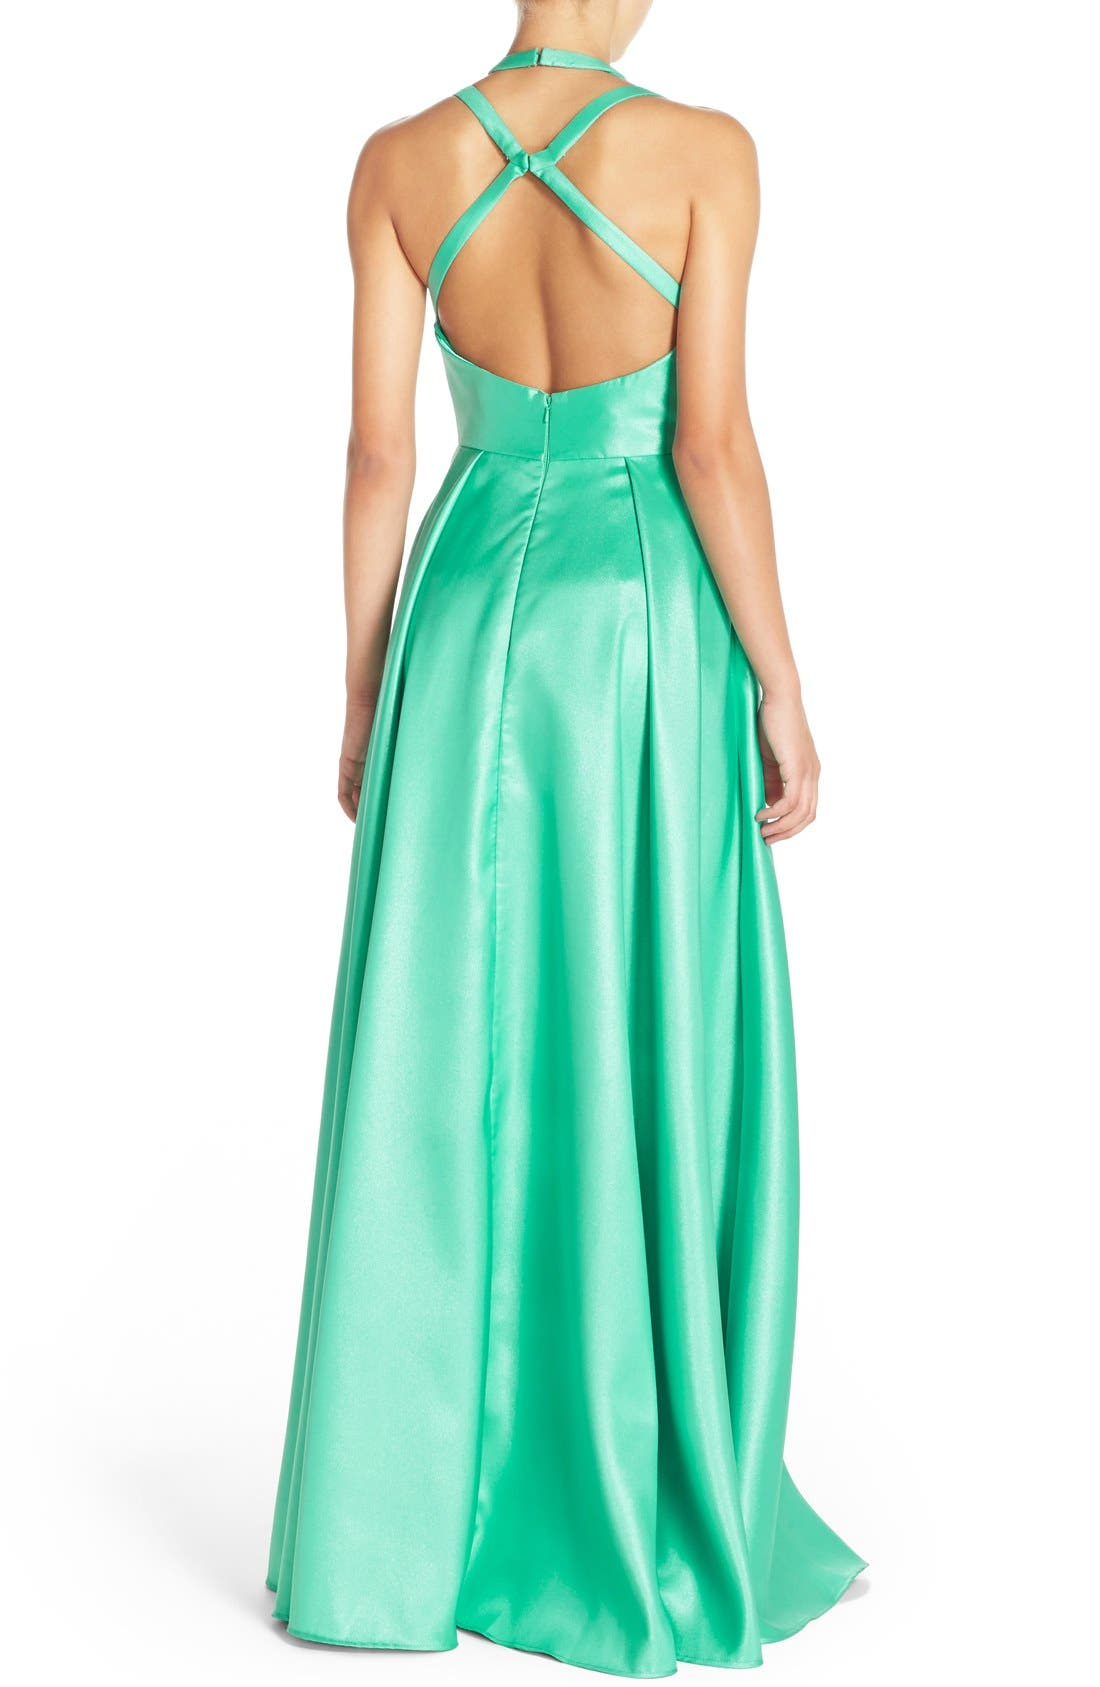 FAVIANA,                             Shimmer Satin Halter Gown with Underskirt,                             Alternate thumbnail 2, color,                             439